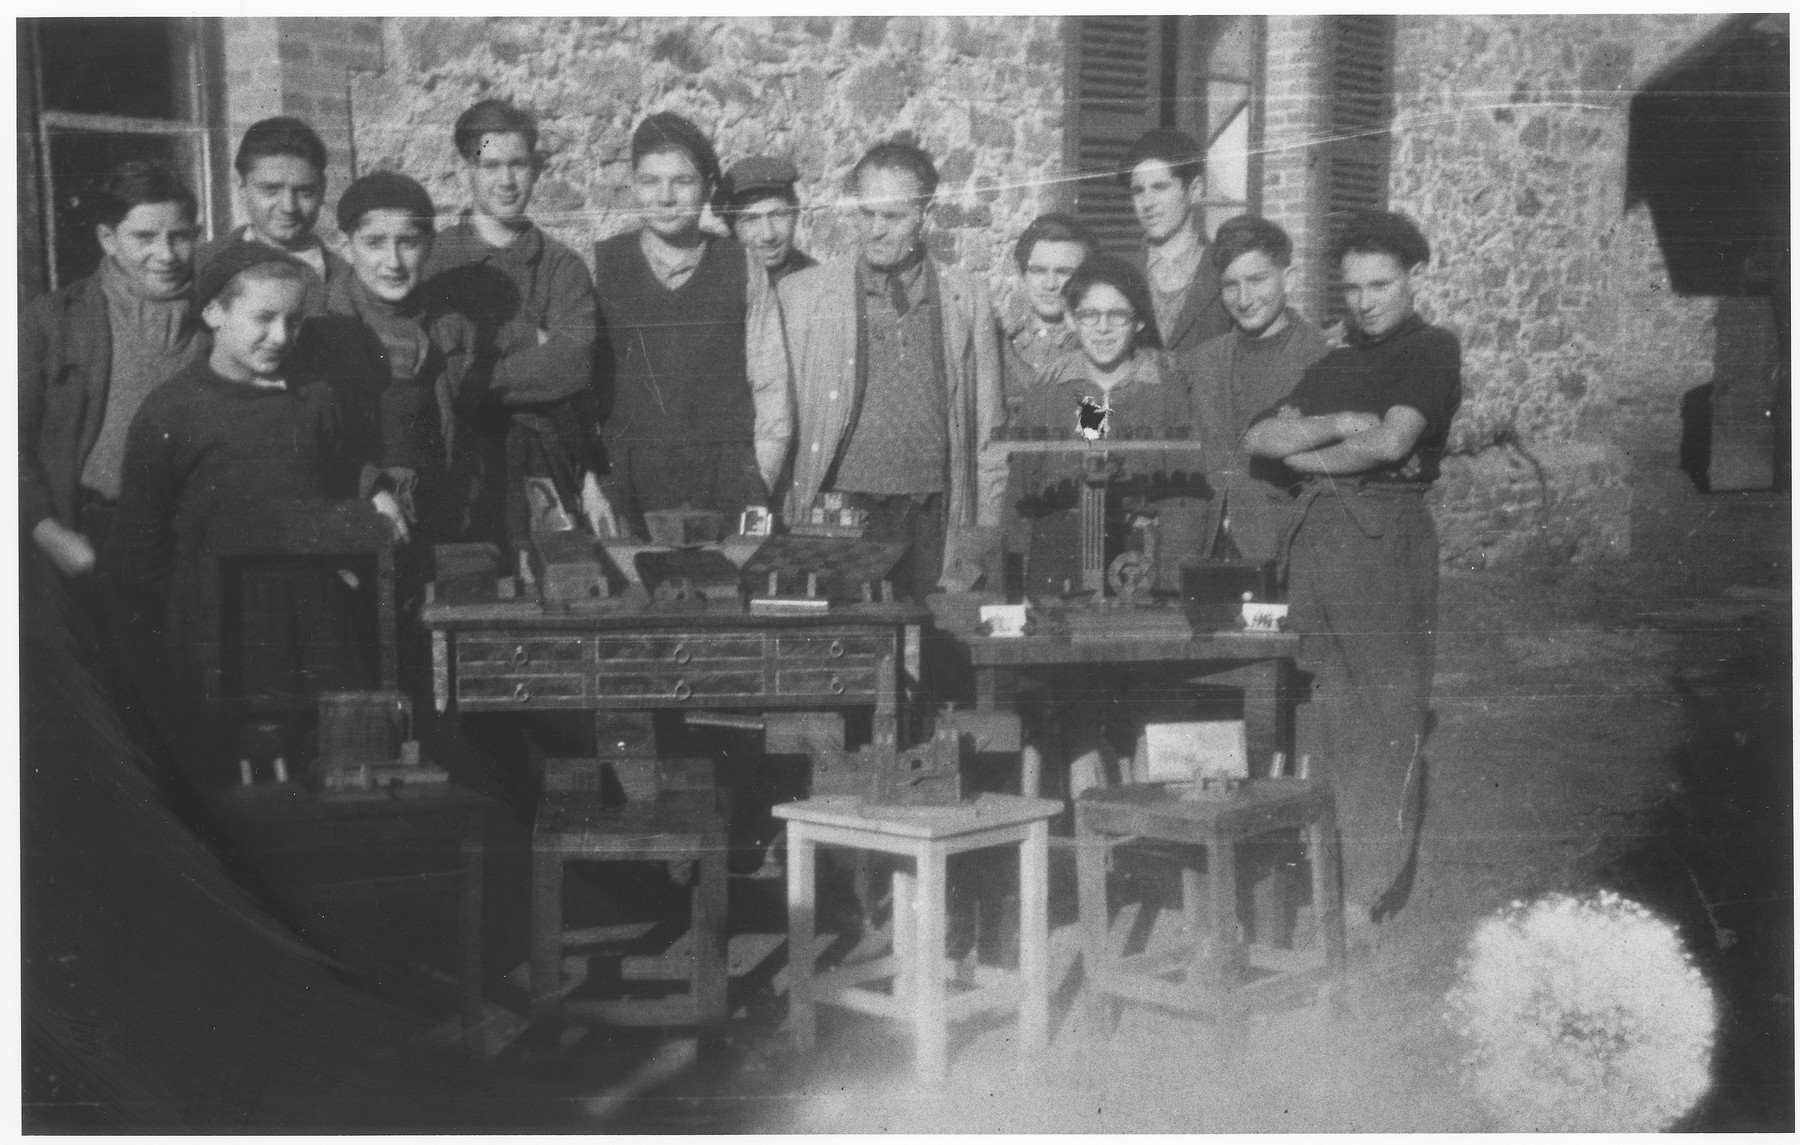 Group portrait of Jewish boys in the carpentry workshop of the Montintin children's home.